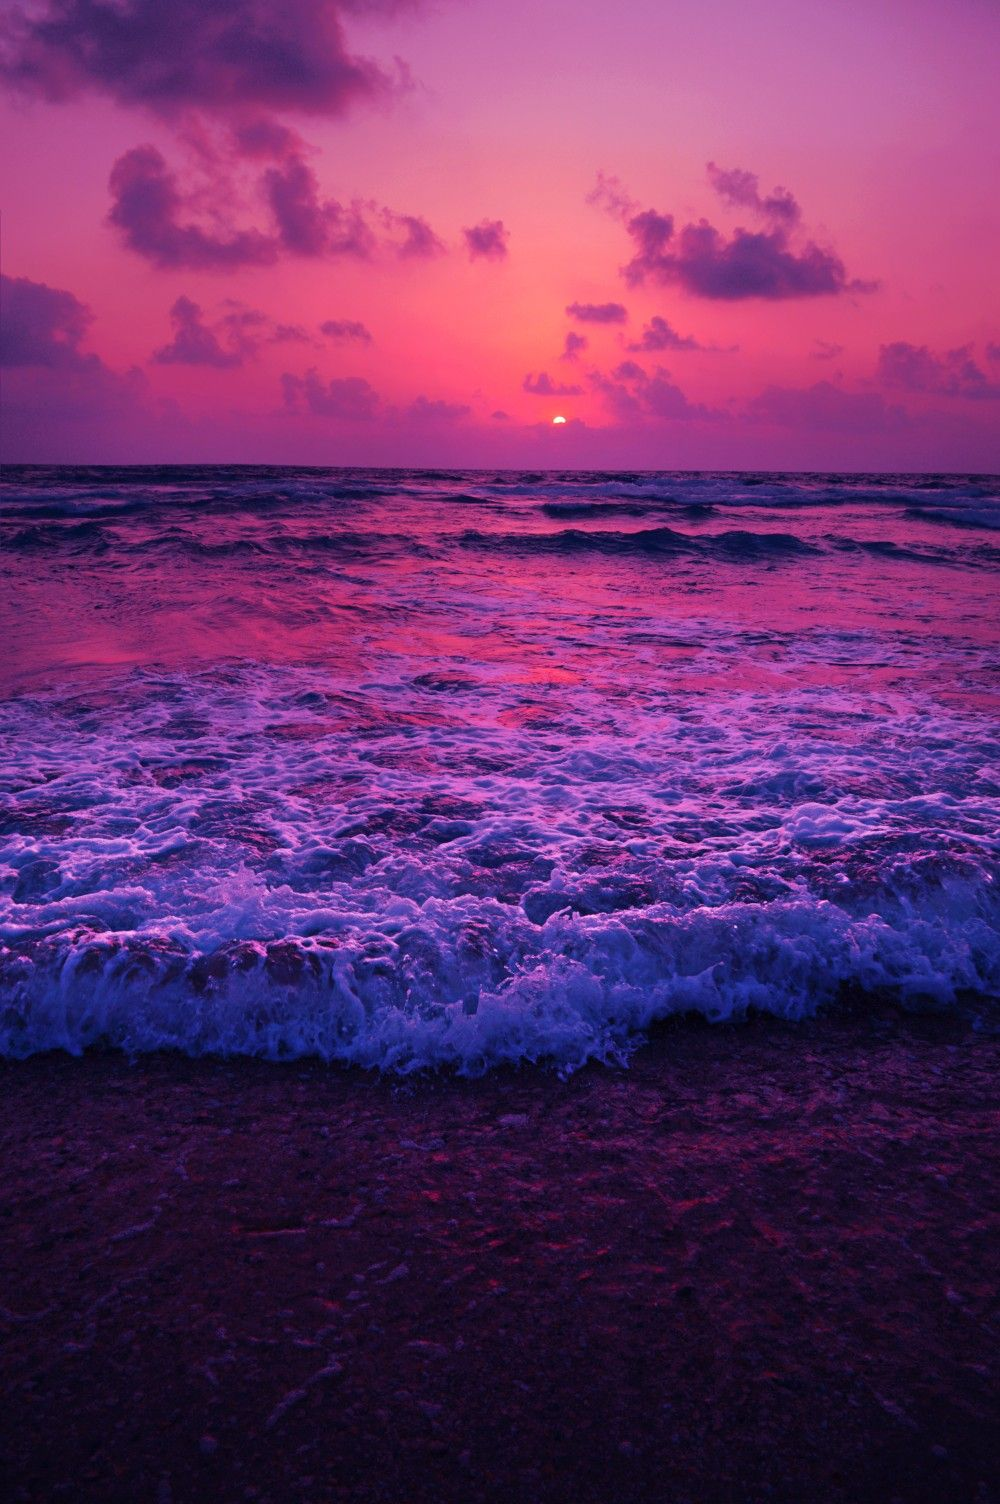 4k Wallpaper Follow me Sunset wallpaper, Pretty